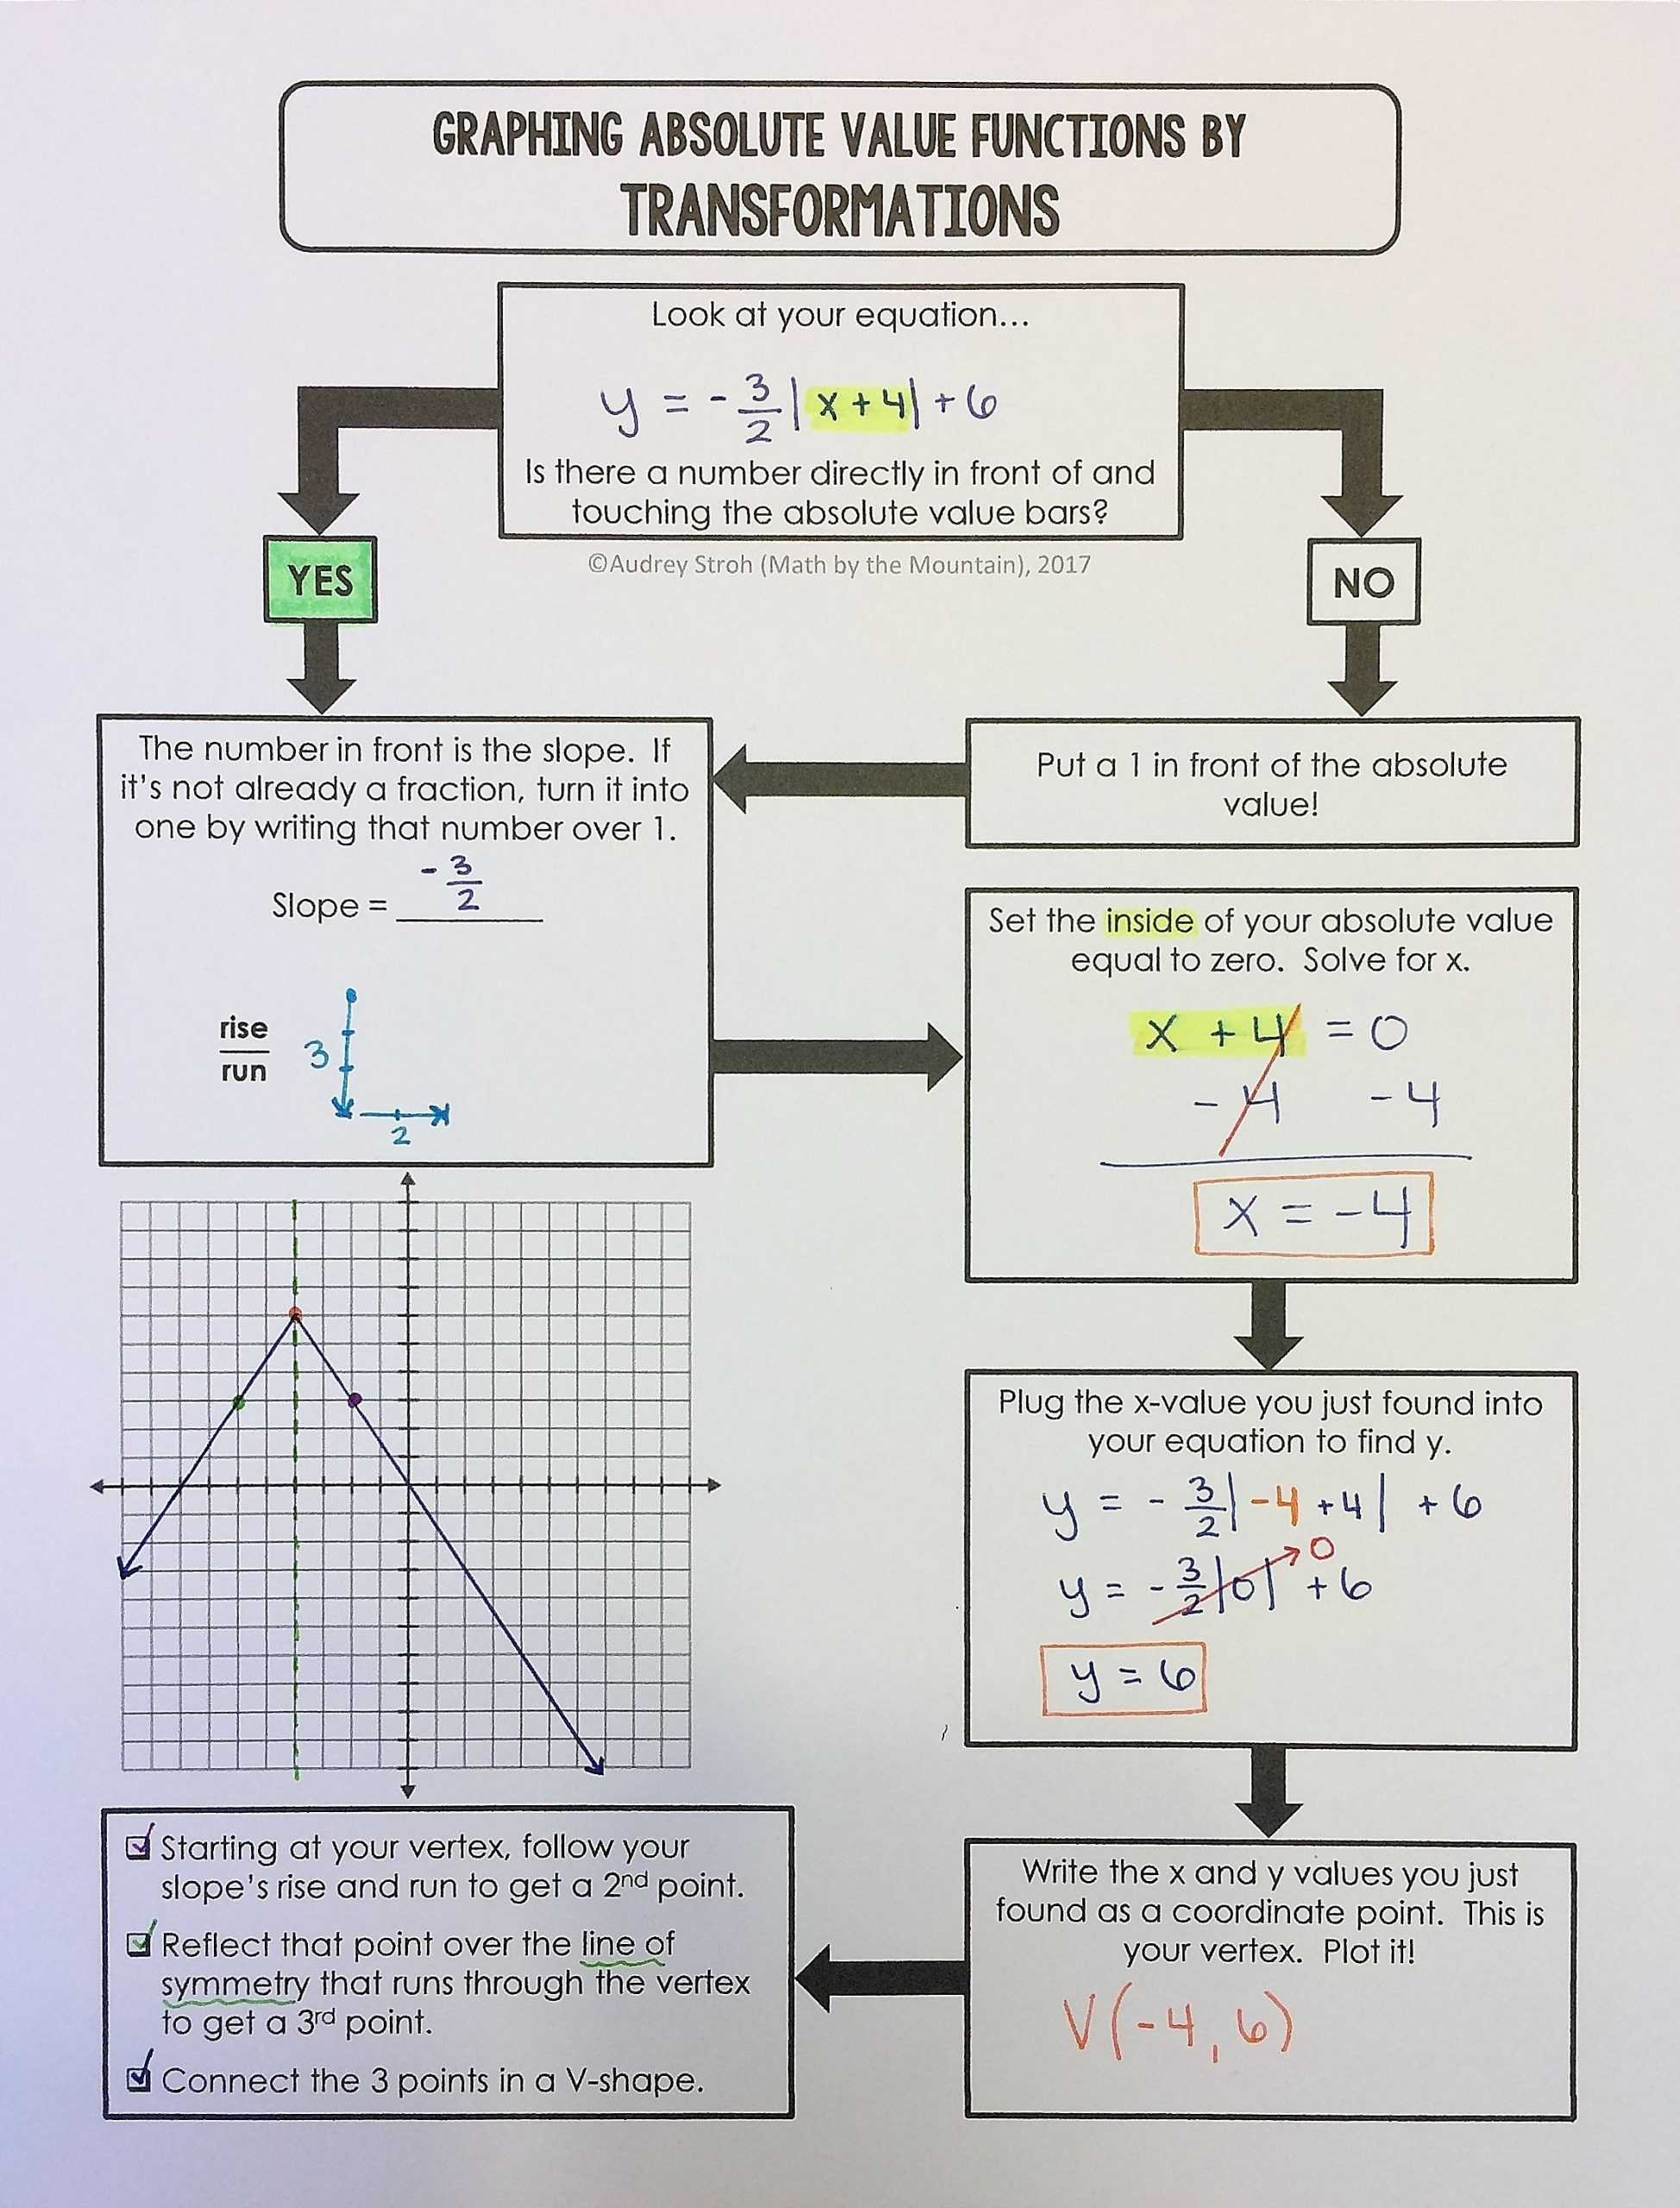 30 Graphing Absolute Value Functions Worksheet